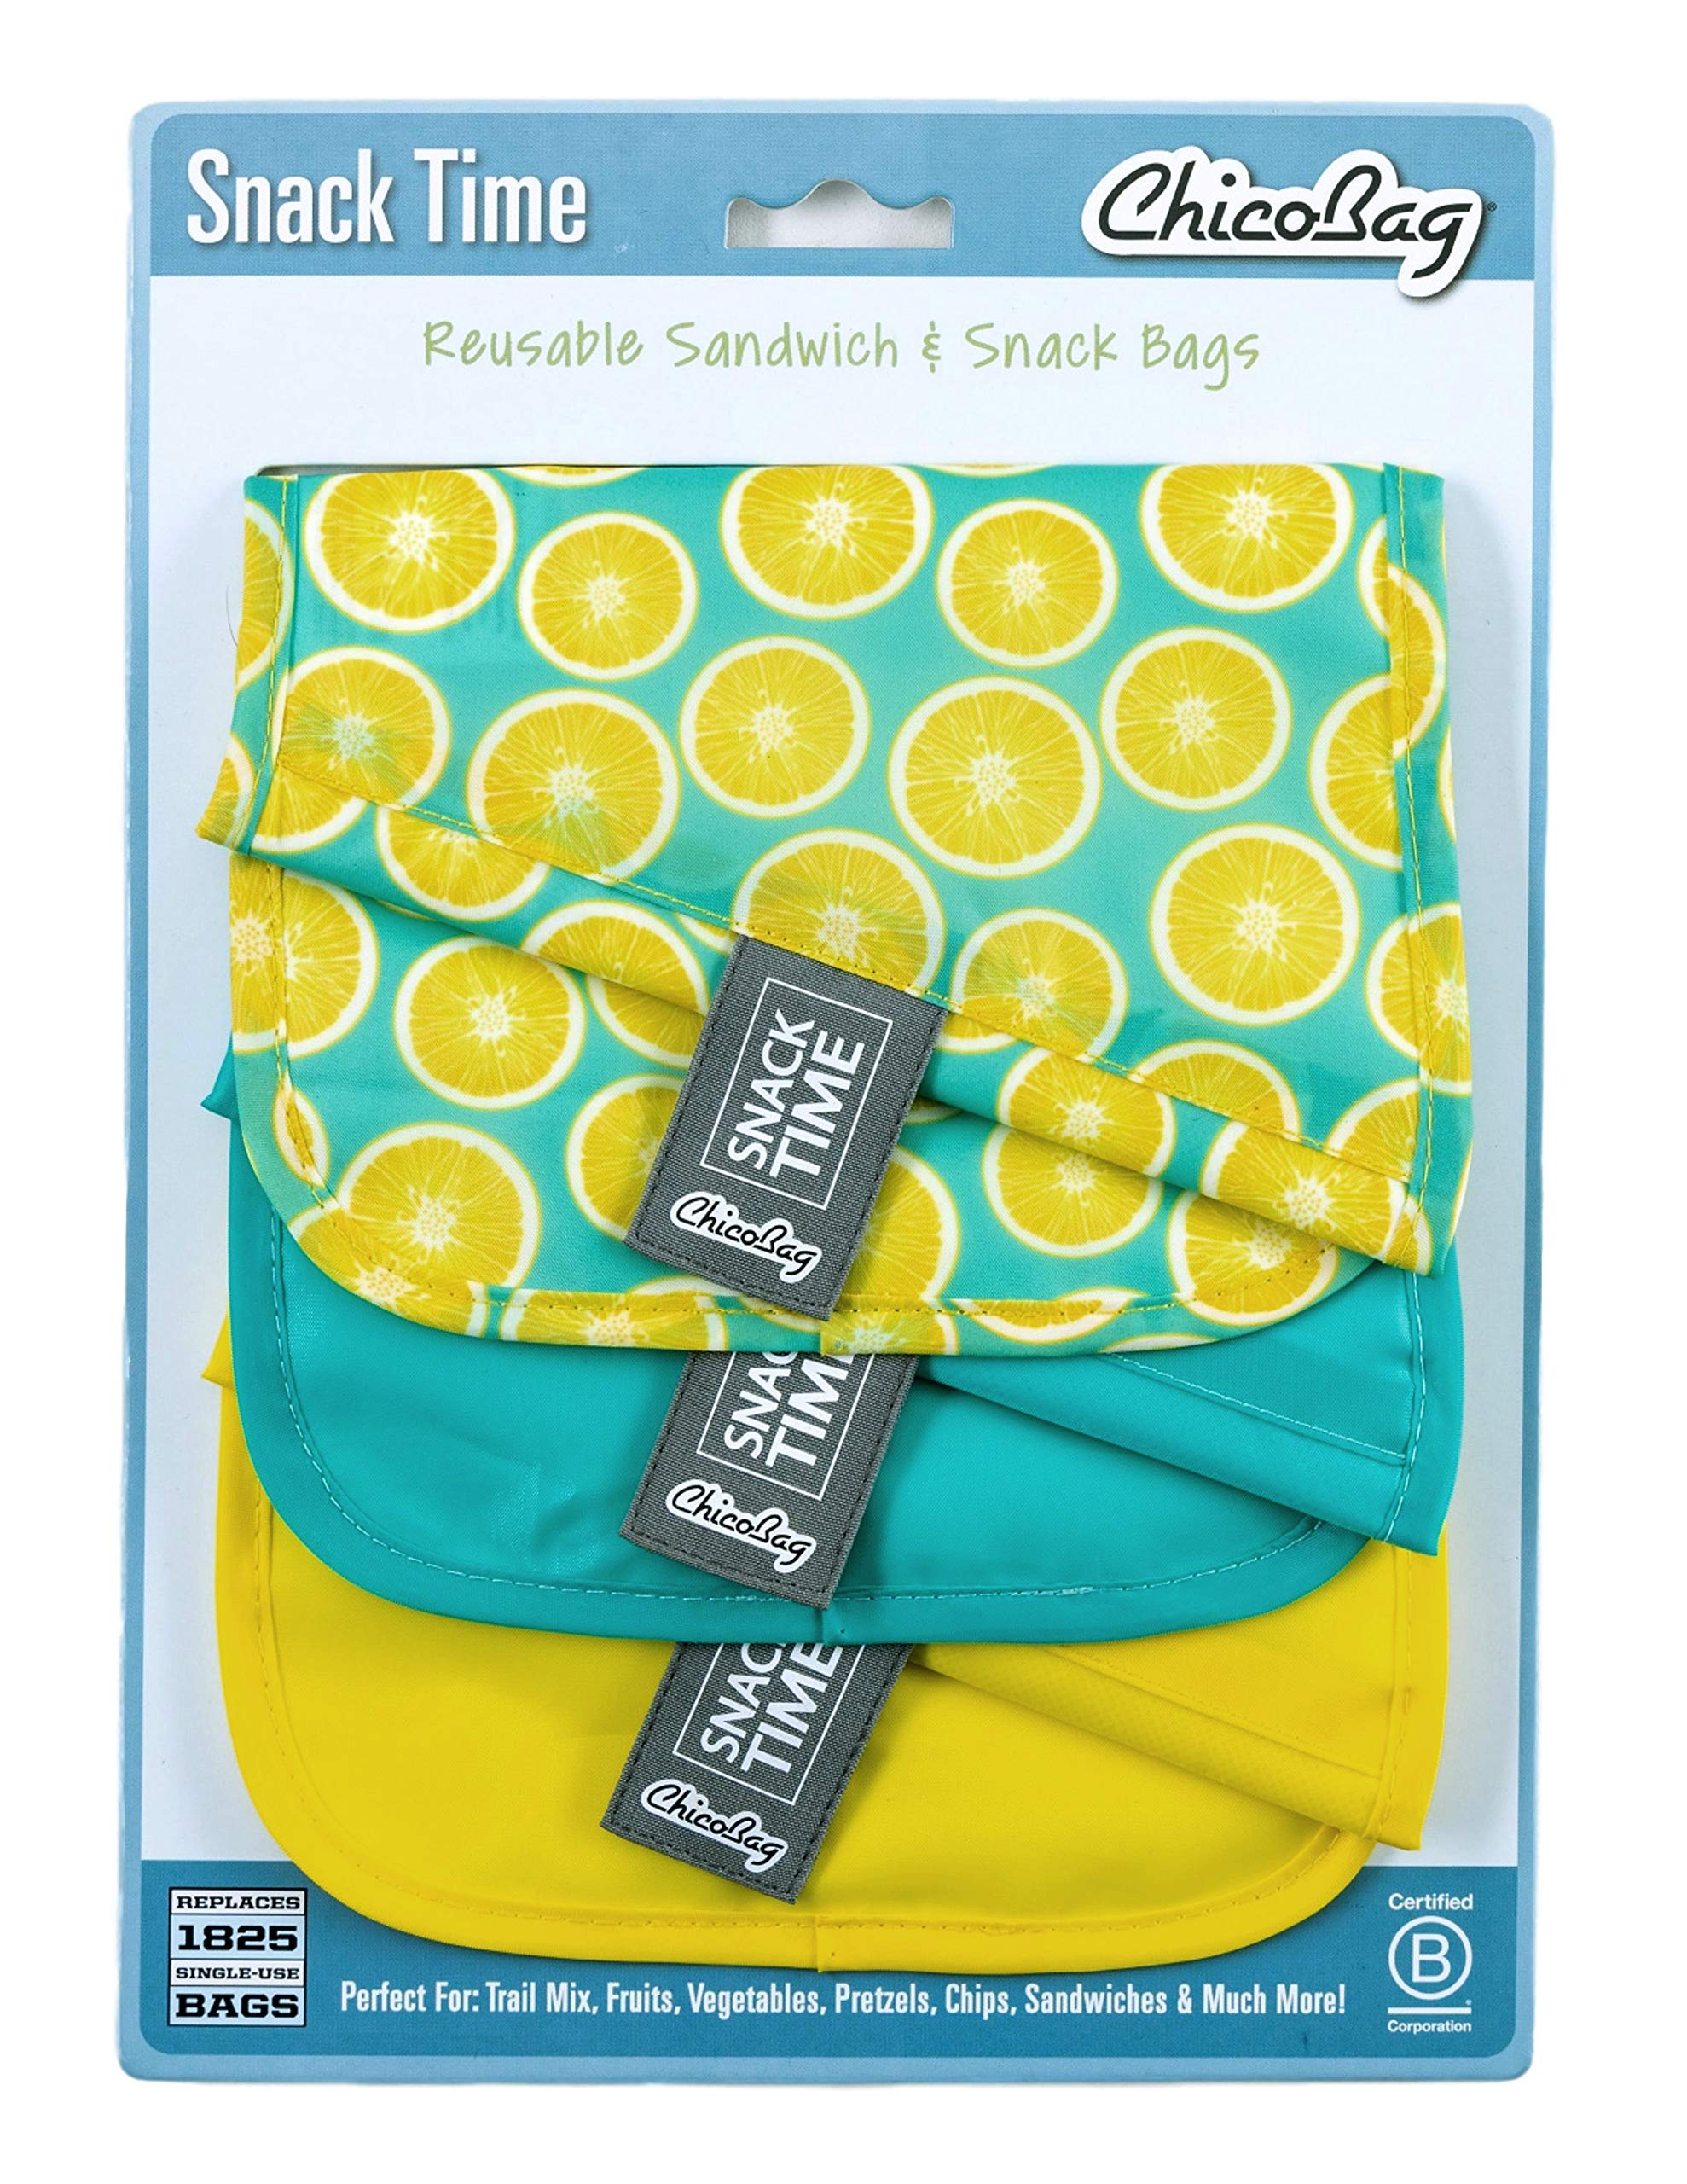 Chicobag Snack Time Reusbale Snack and Sandwhich Bags, Eco Friendly, Water and Stain Resistant Liner, Set of 3, Lemon Pattern